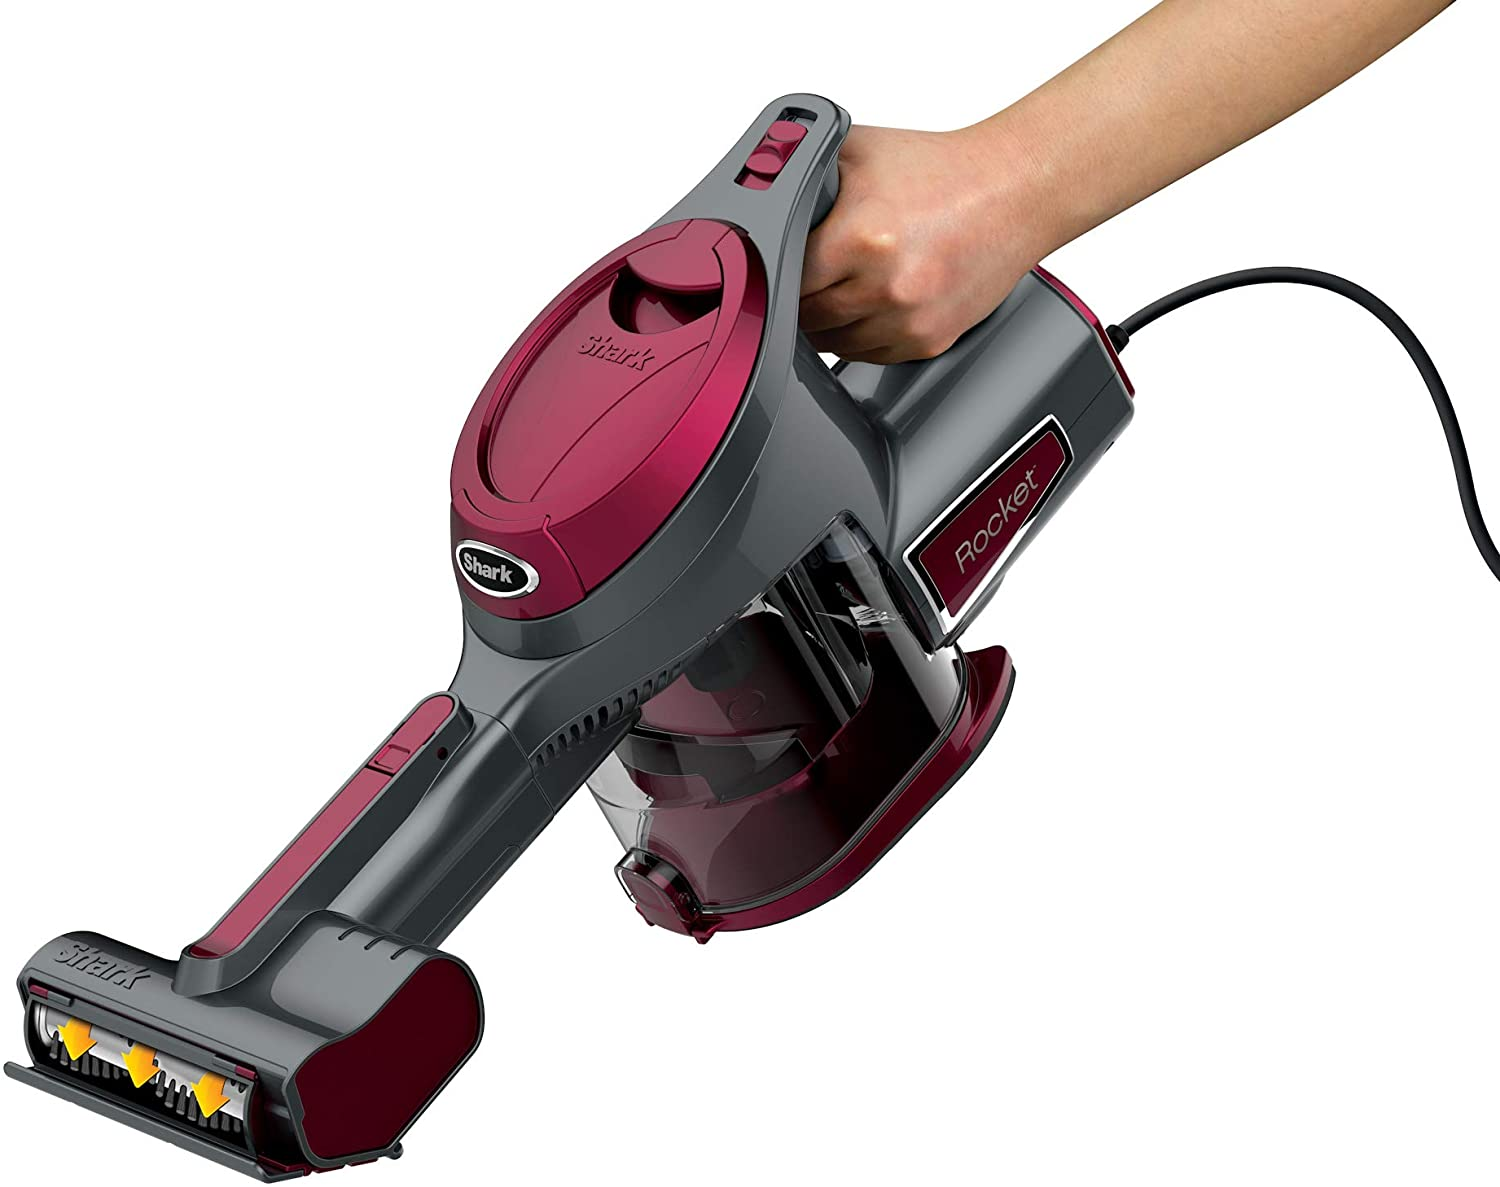 Best Shark Vacuums Tested & Reviewed 42